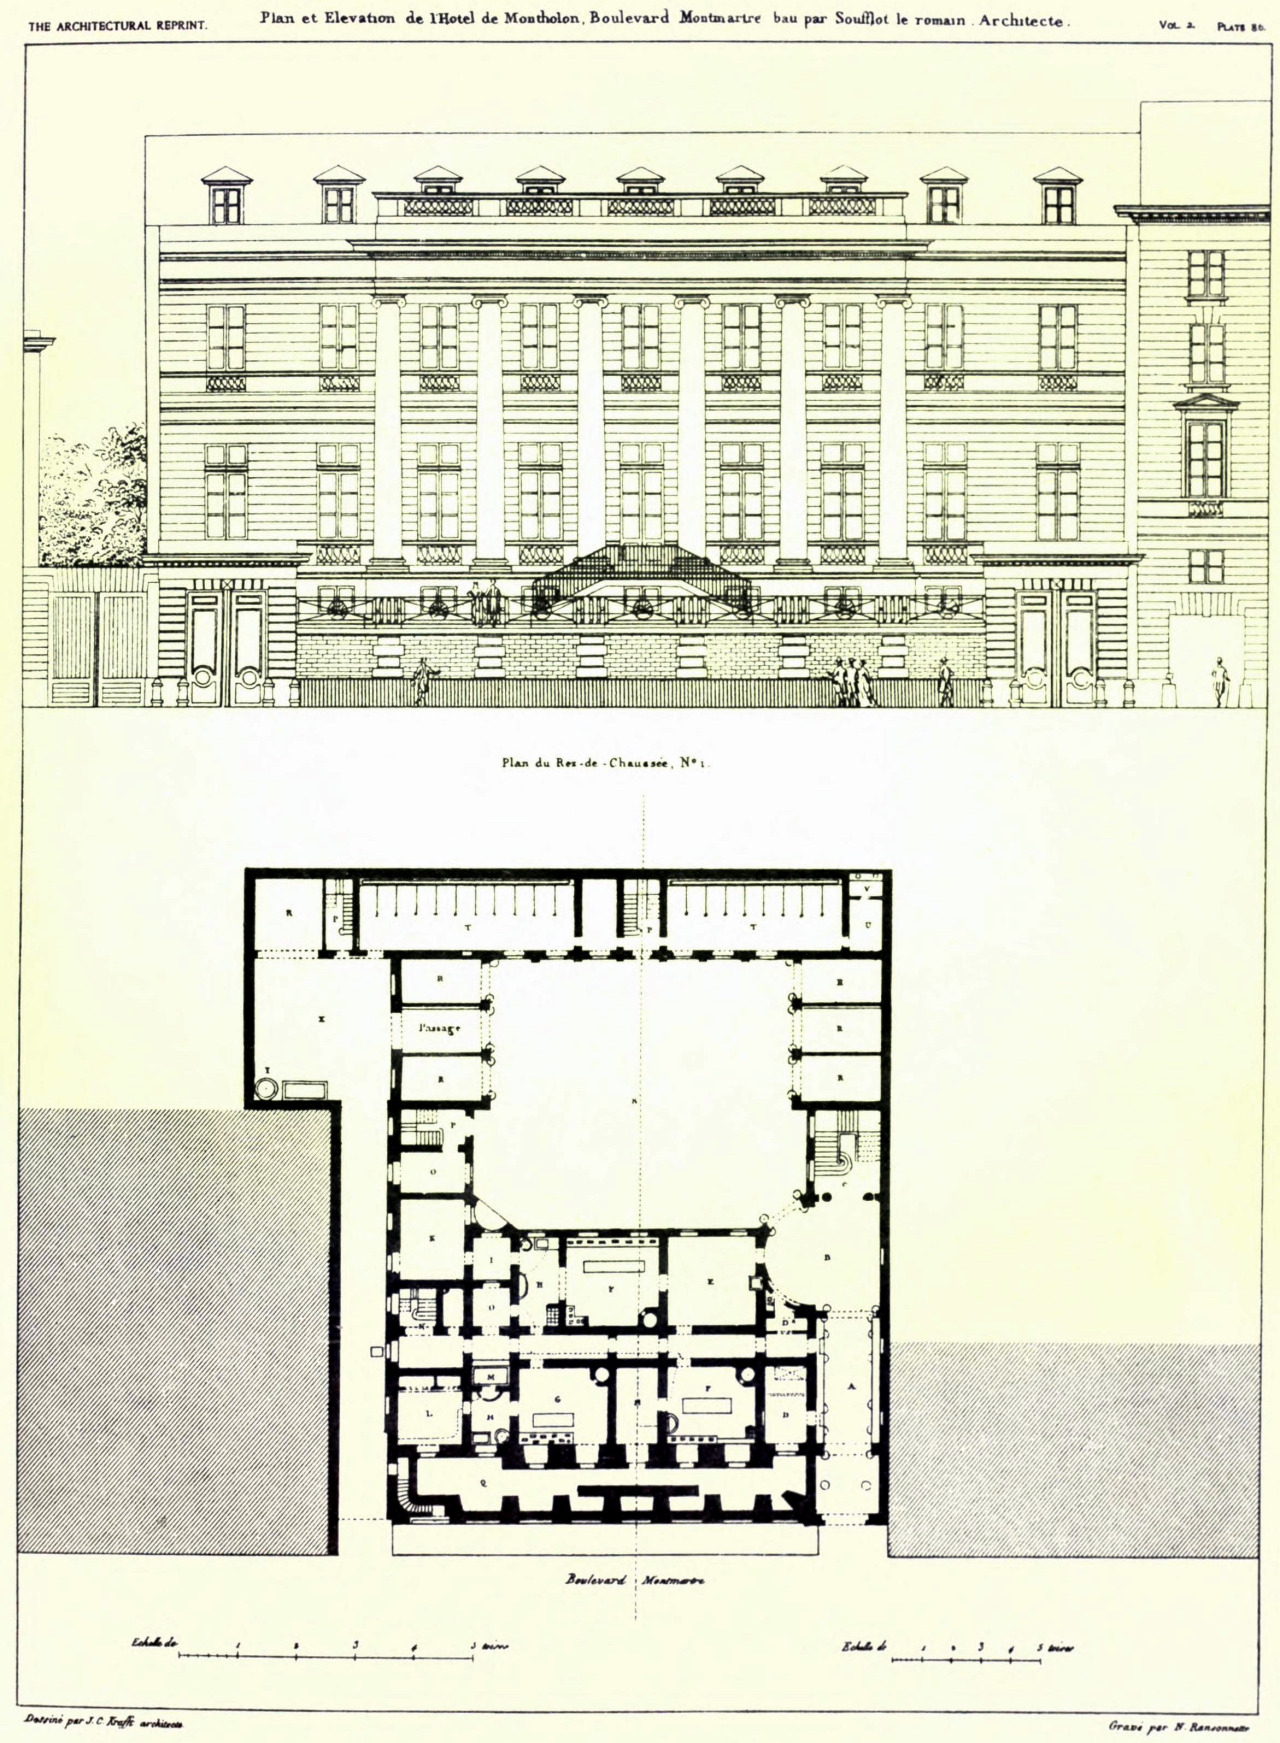 Elevation and plan of Soufflot's Hôtel de Montholon on Boulevard Montmartre, Paris